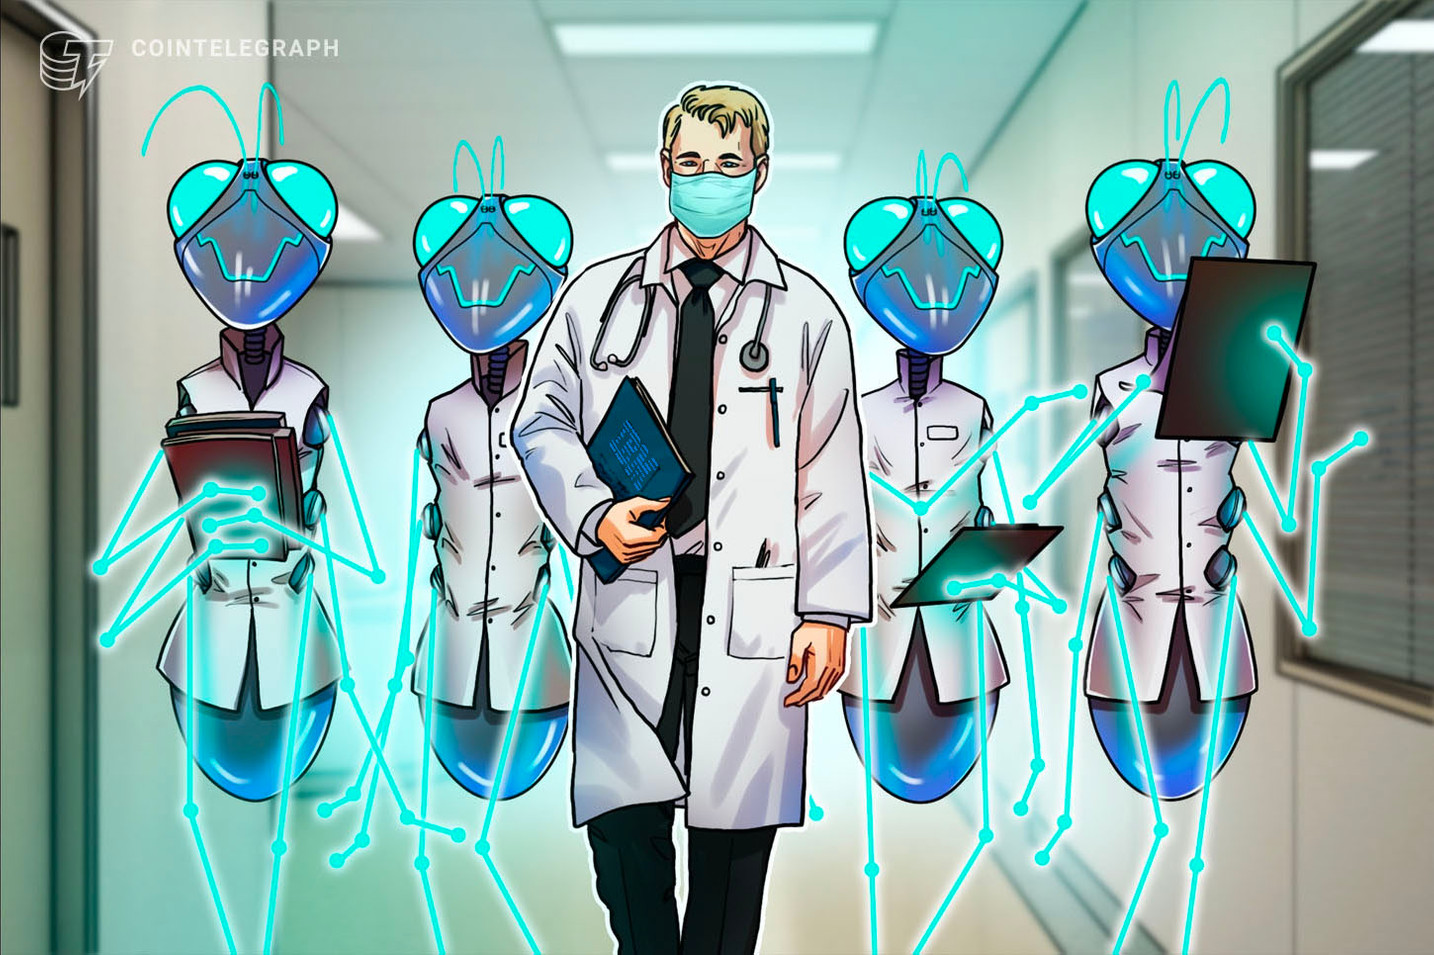 NYC Hospitals Turn to IBM's Blockchain Tech for COVID-19 Relief